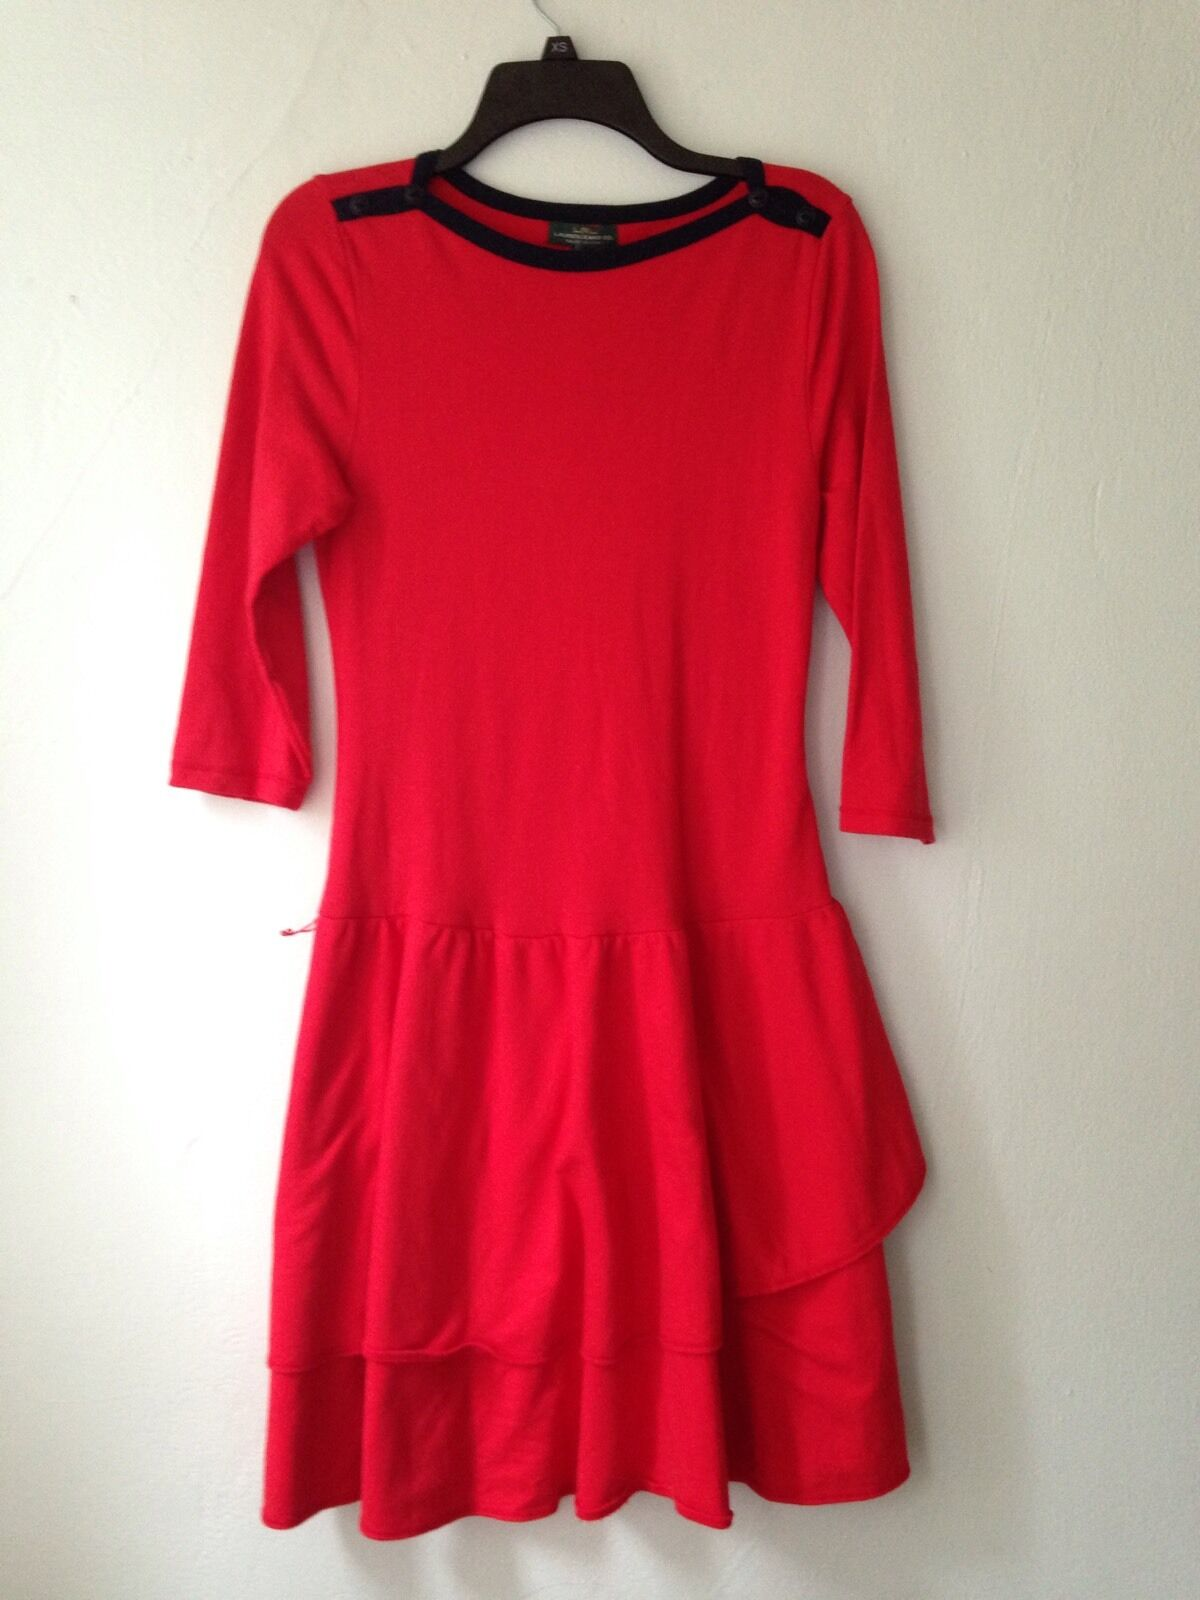 Ralph Lauren Jeans Red Cotton Casual Dress Size Small